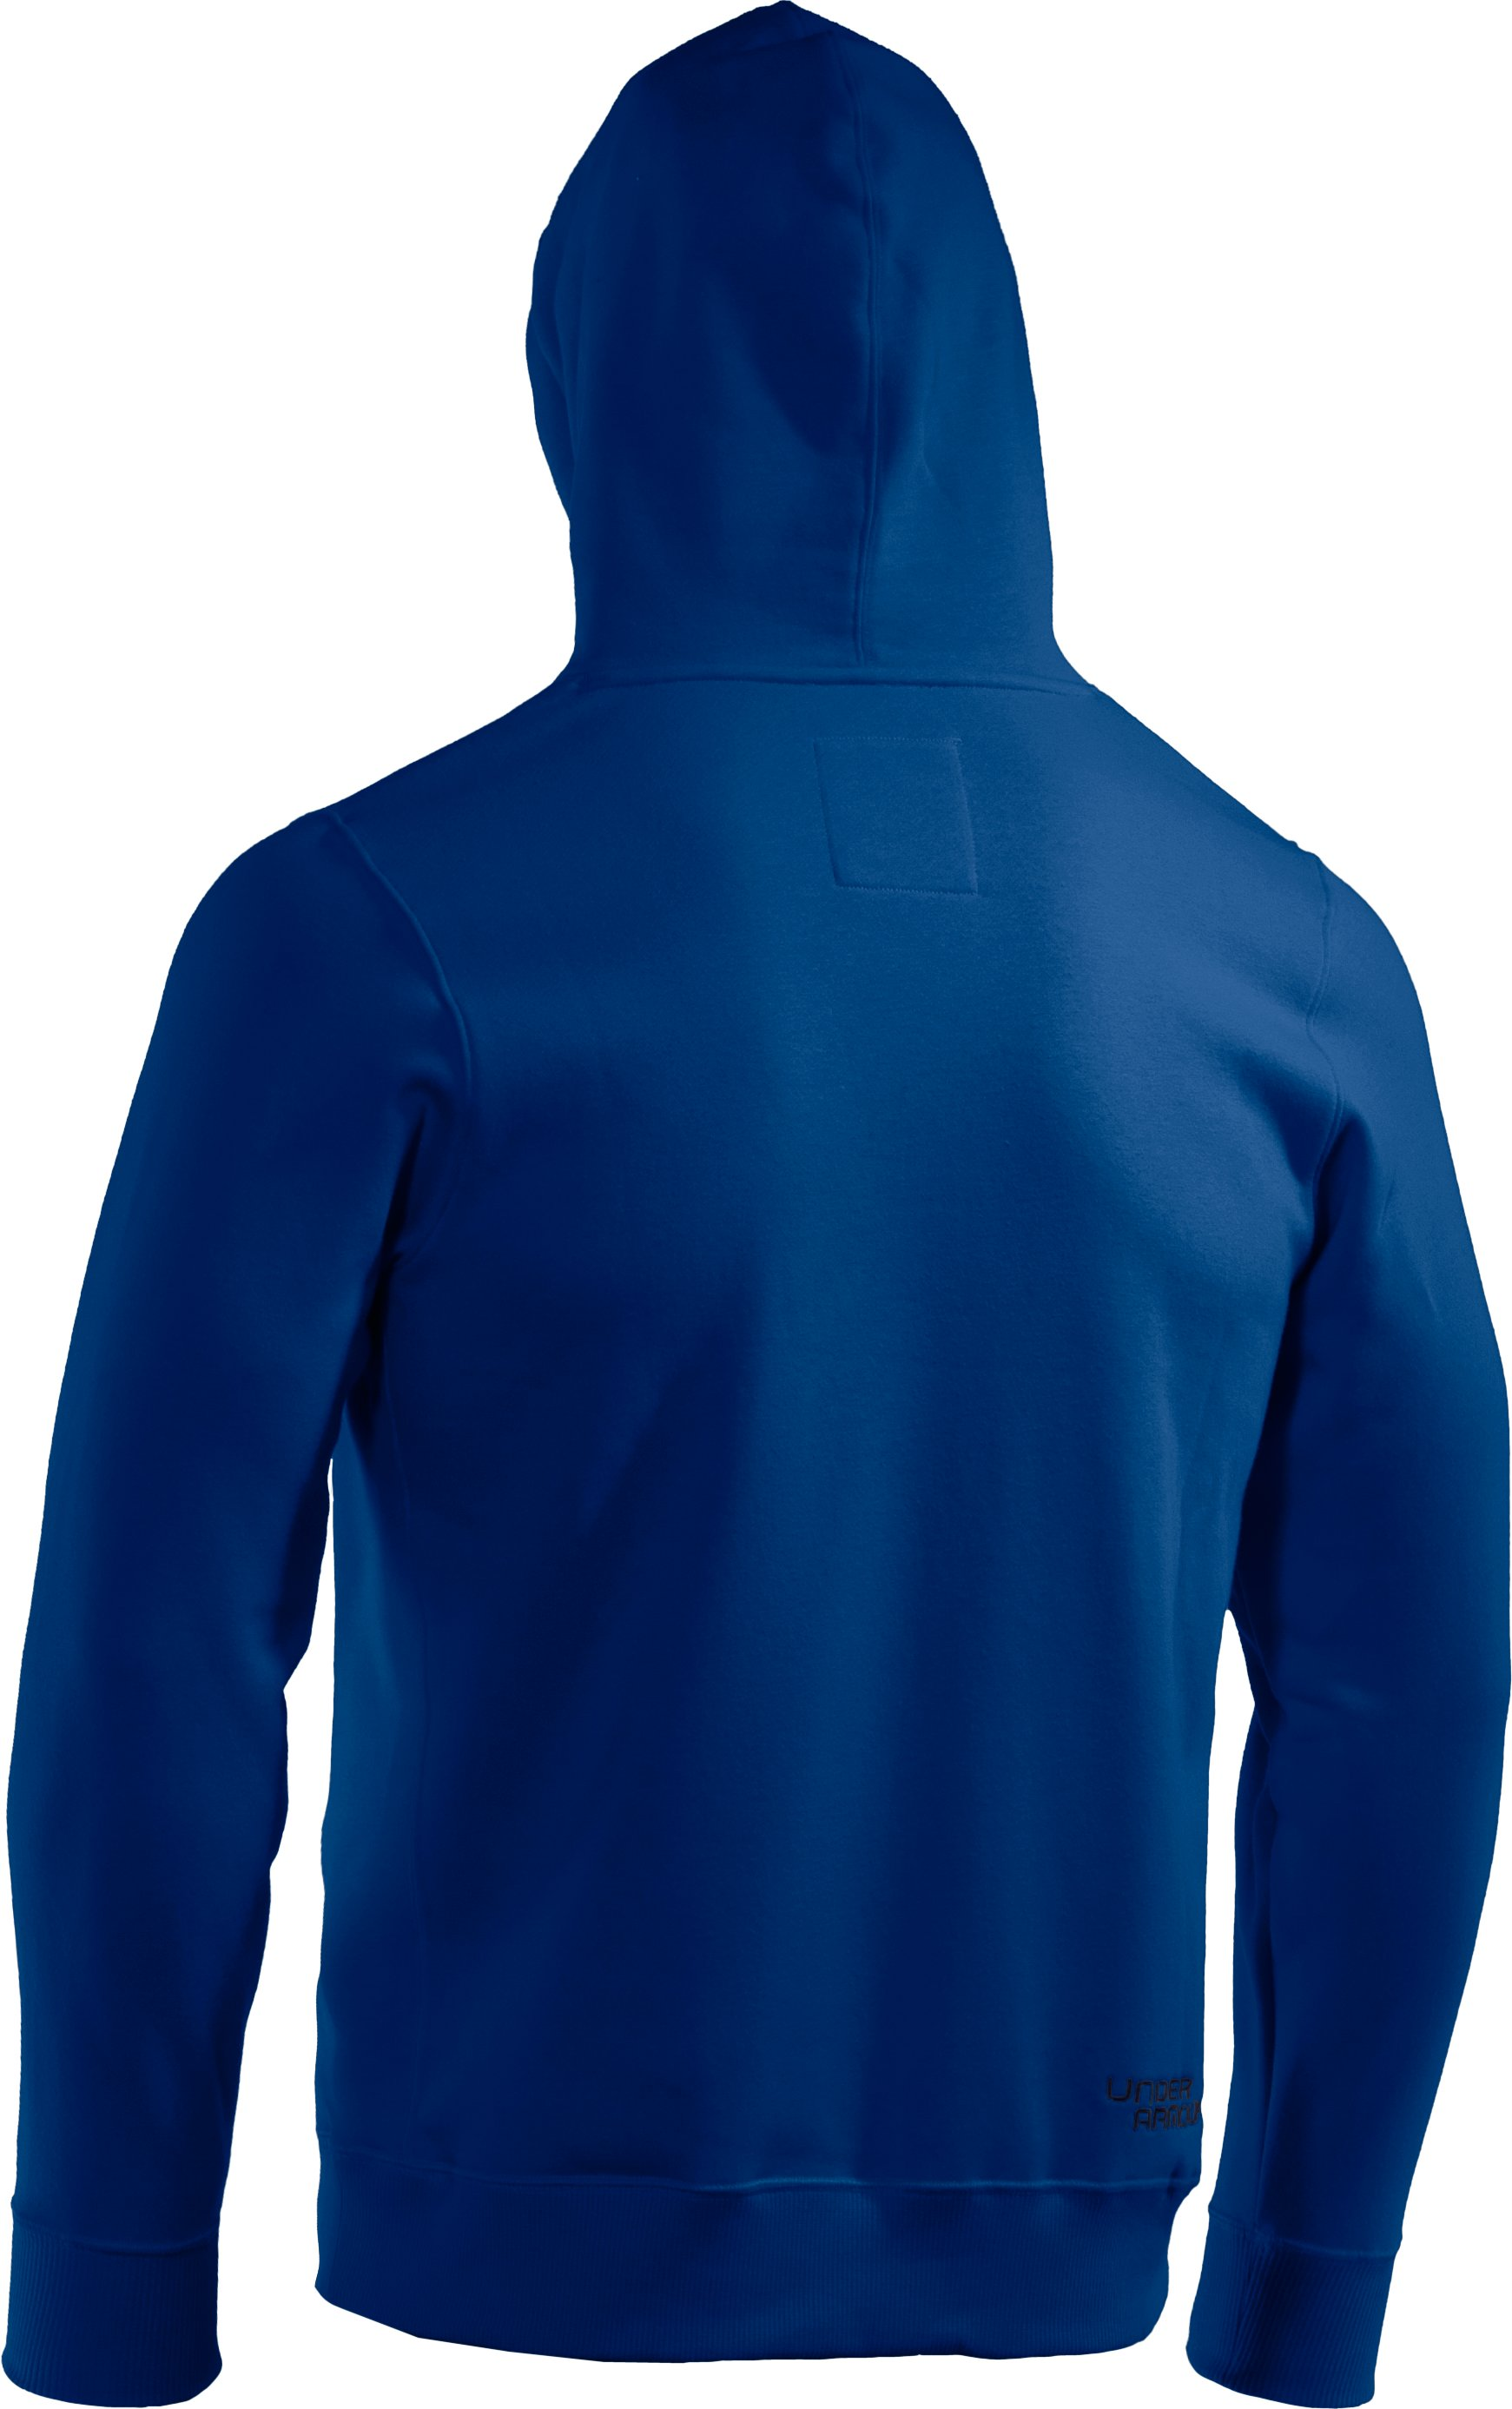 Men's Charged Cotton® Storm Pullover Hoodie, EMPIRE BLUE, undefined